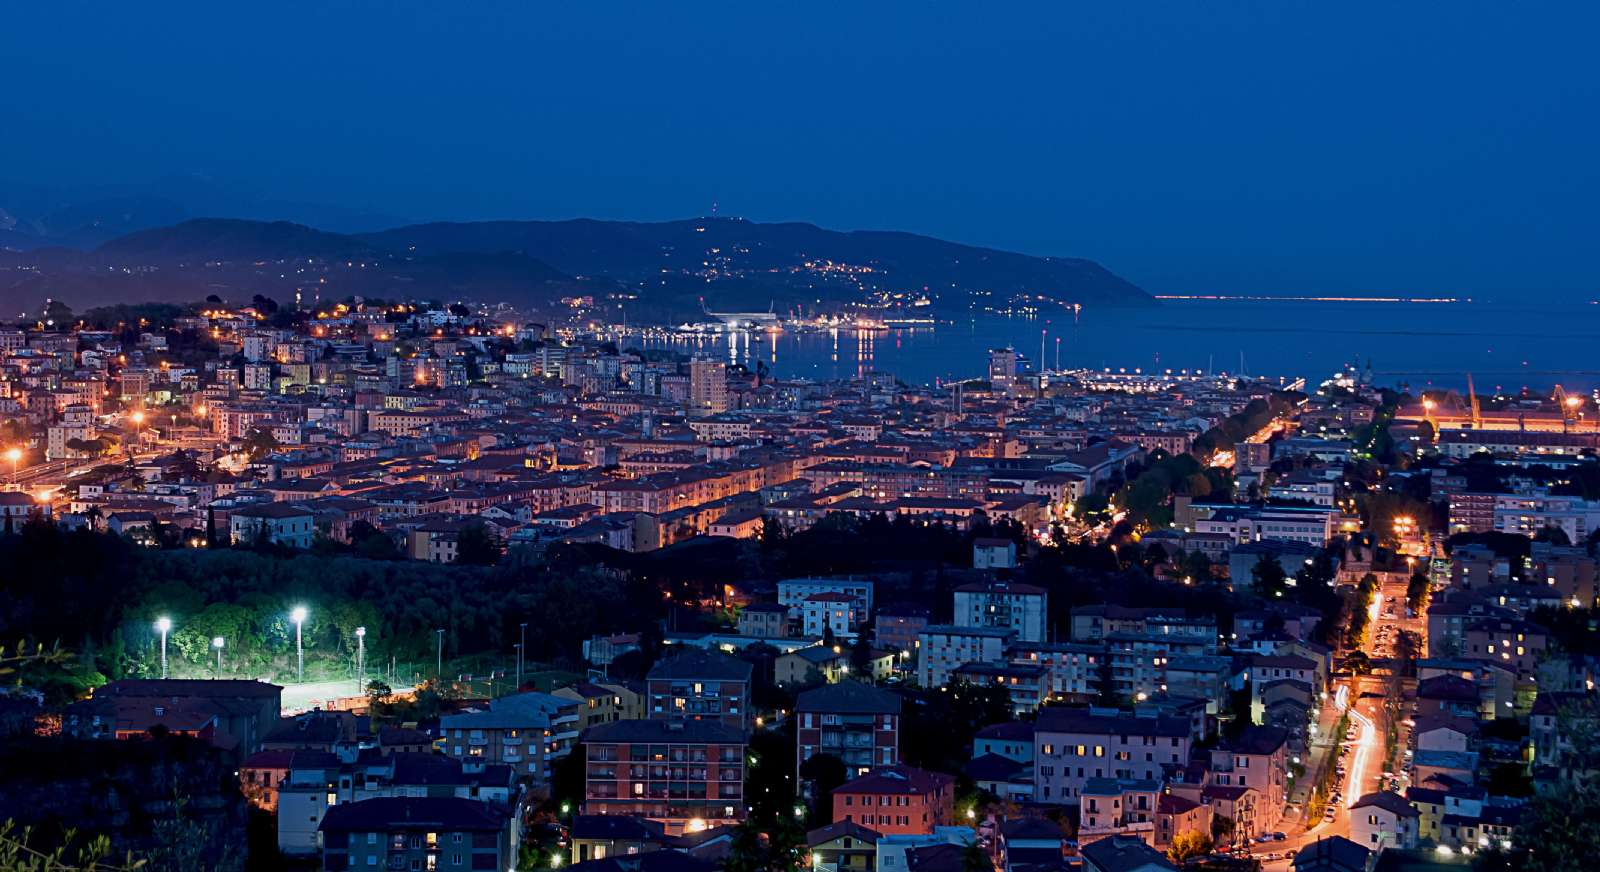 La Spezia by night